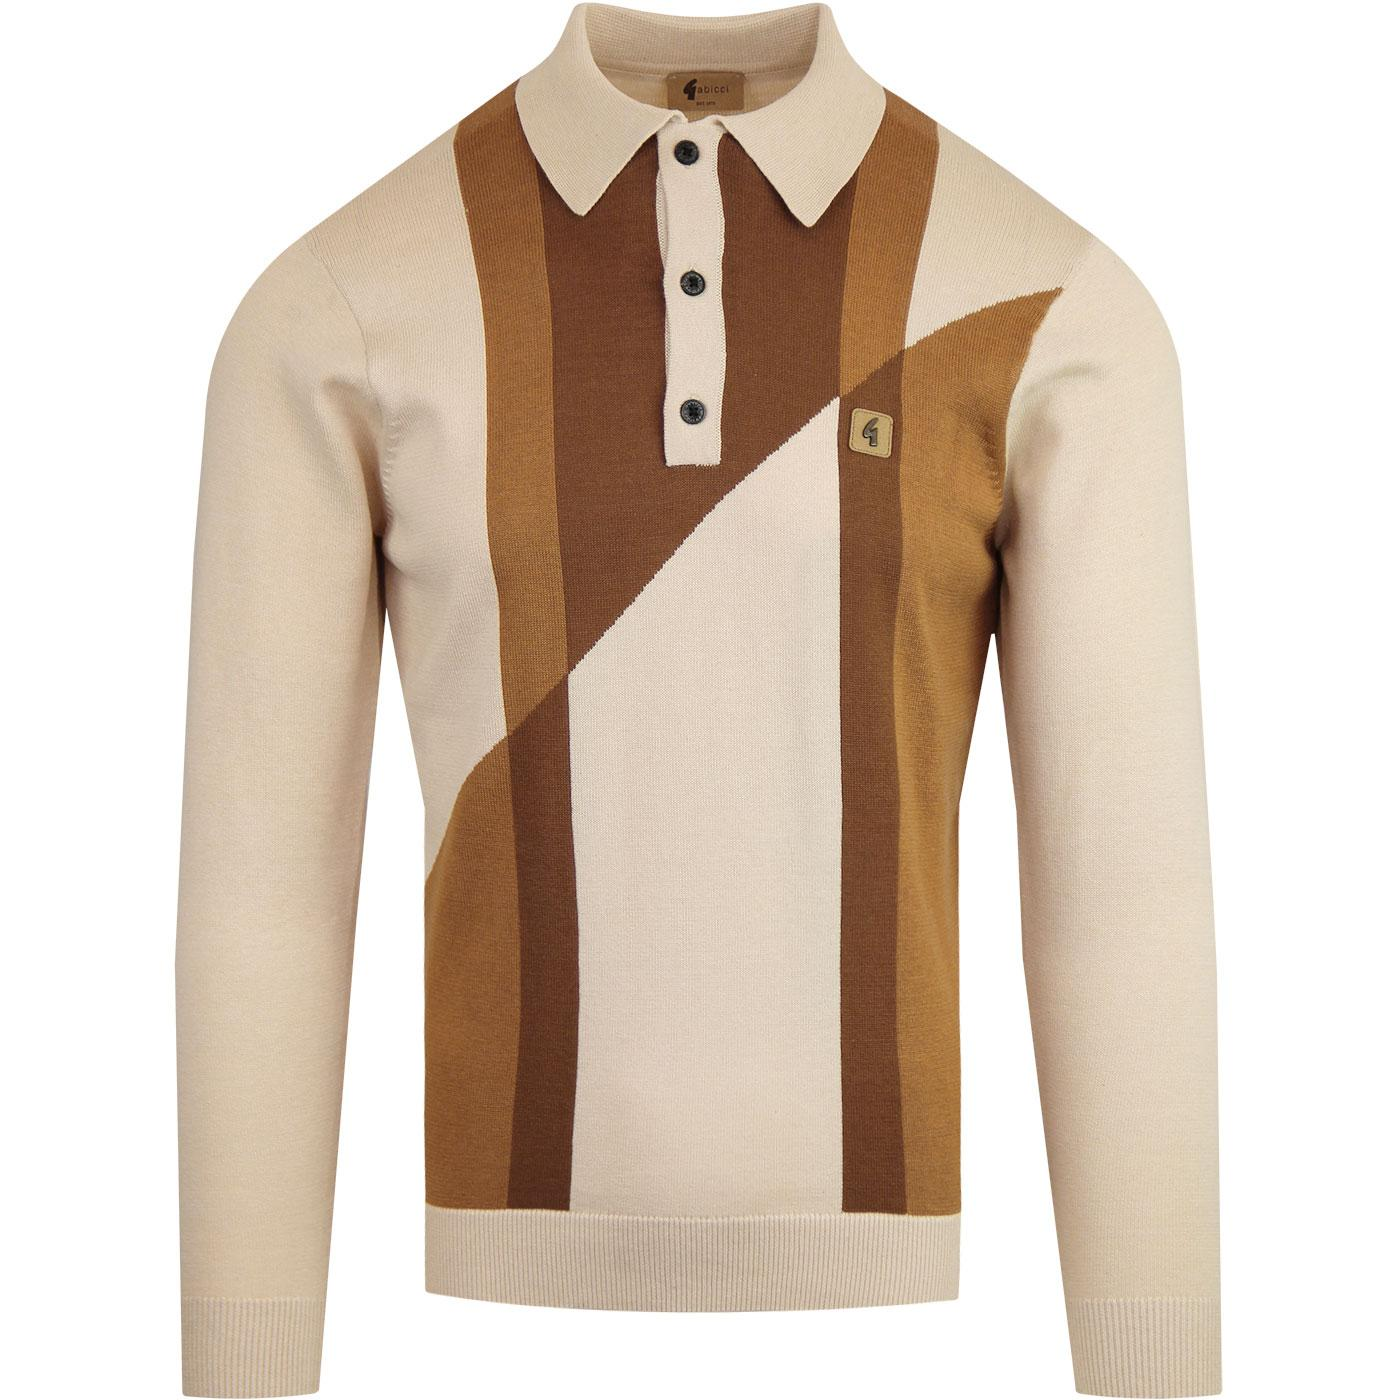 Texas GABICCI VINTAGE Mod Abstract Knit Polo (Oat)